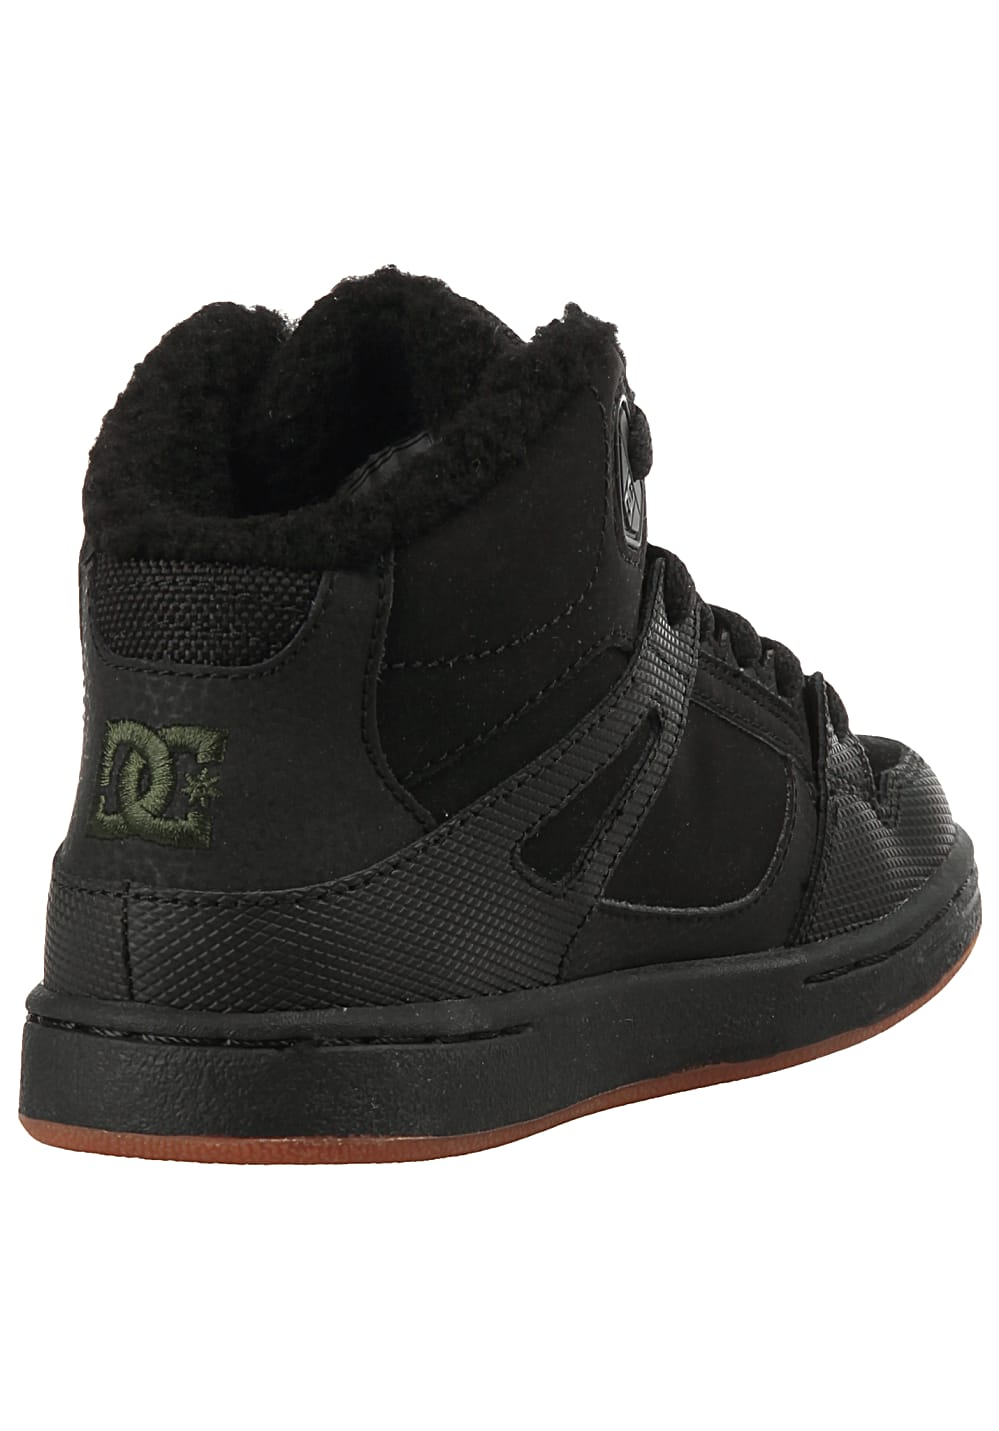 a22738501036 DC Pure Ht Winter - Sneakers for Kids Boys - Black - Planet Sports